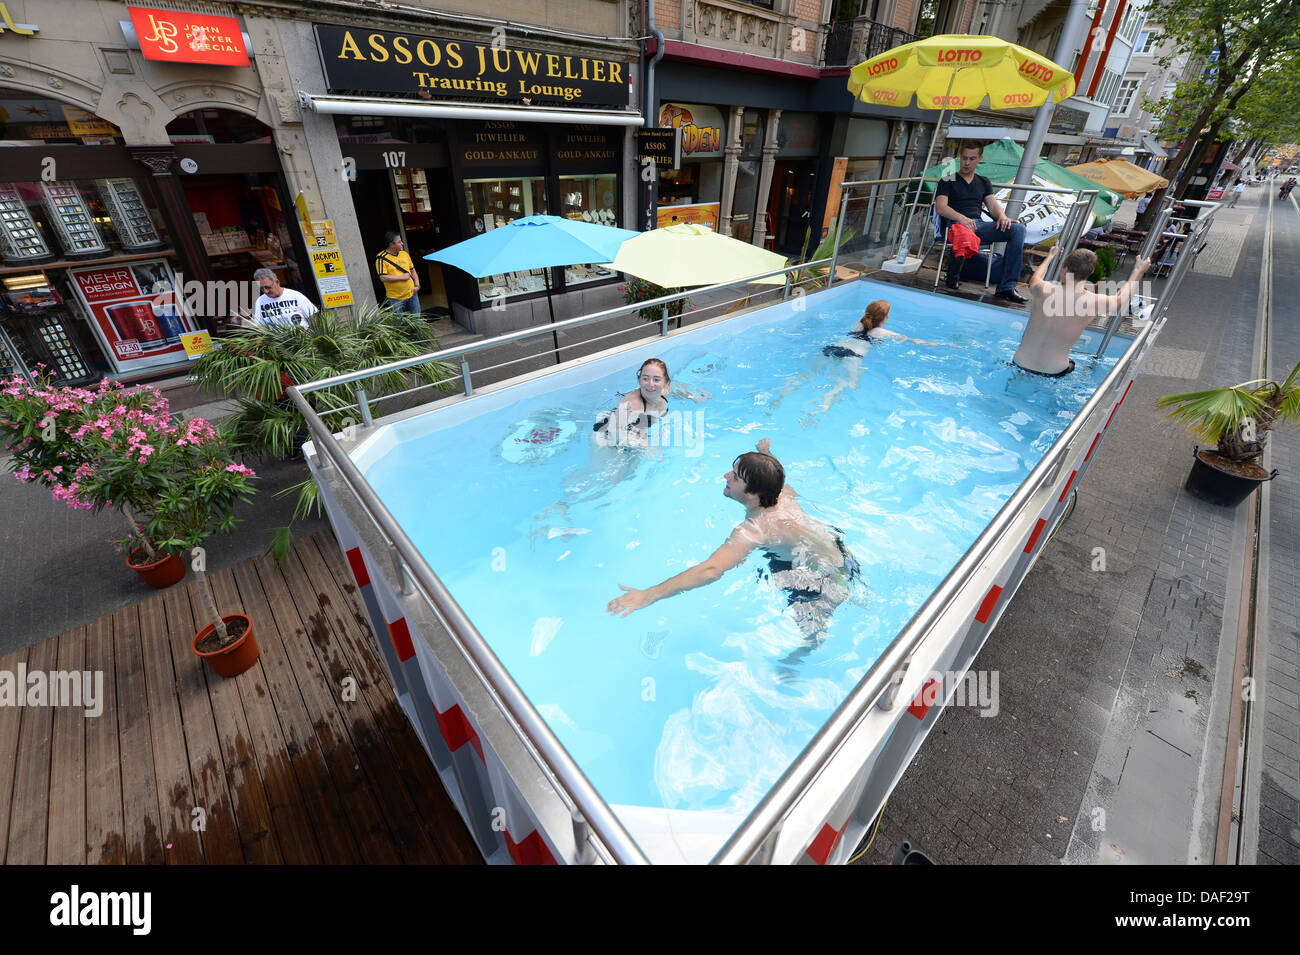 Mobile Pool karlsruhe, germany. 11th july, 2013. people go for a swim in a